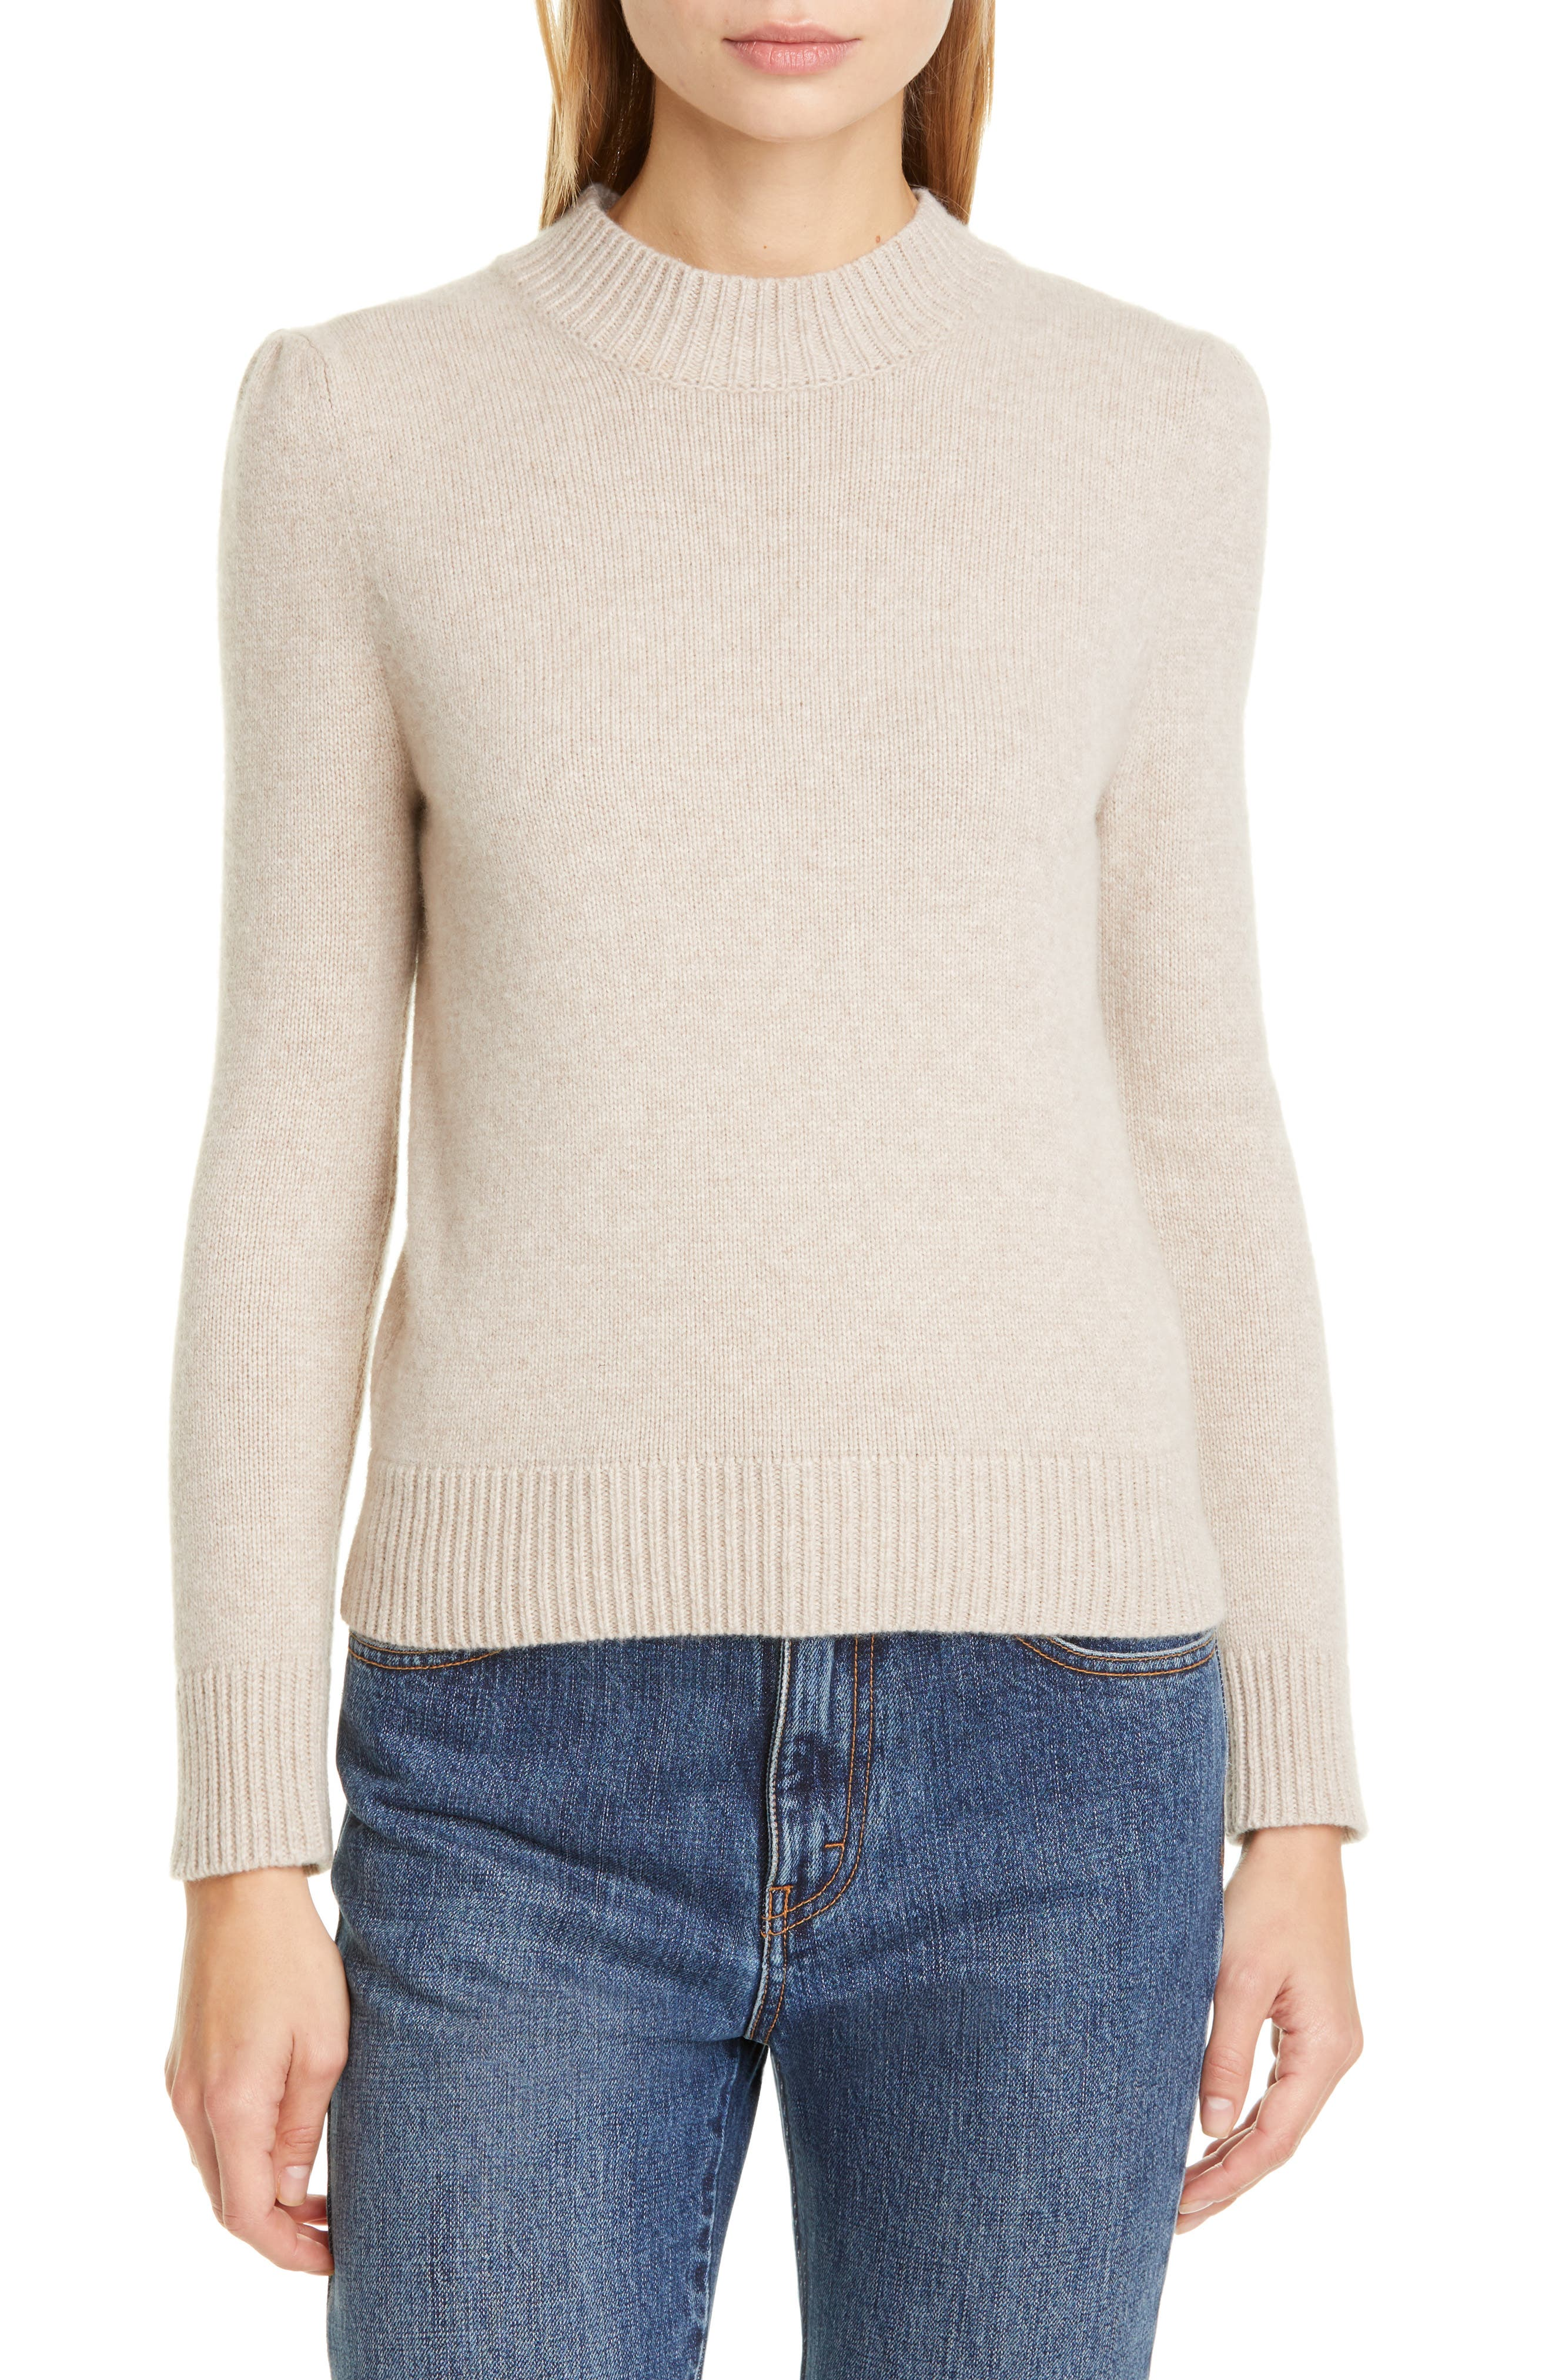 Gathered shoulders add charming detail to this cropped cashmere sweater, part of Co\\\'s well-edited collection of classic wardrobe staples. Style Name: Co Essentials Cashmere Crop Sweater. Style Number: 5937389. Available in stores.